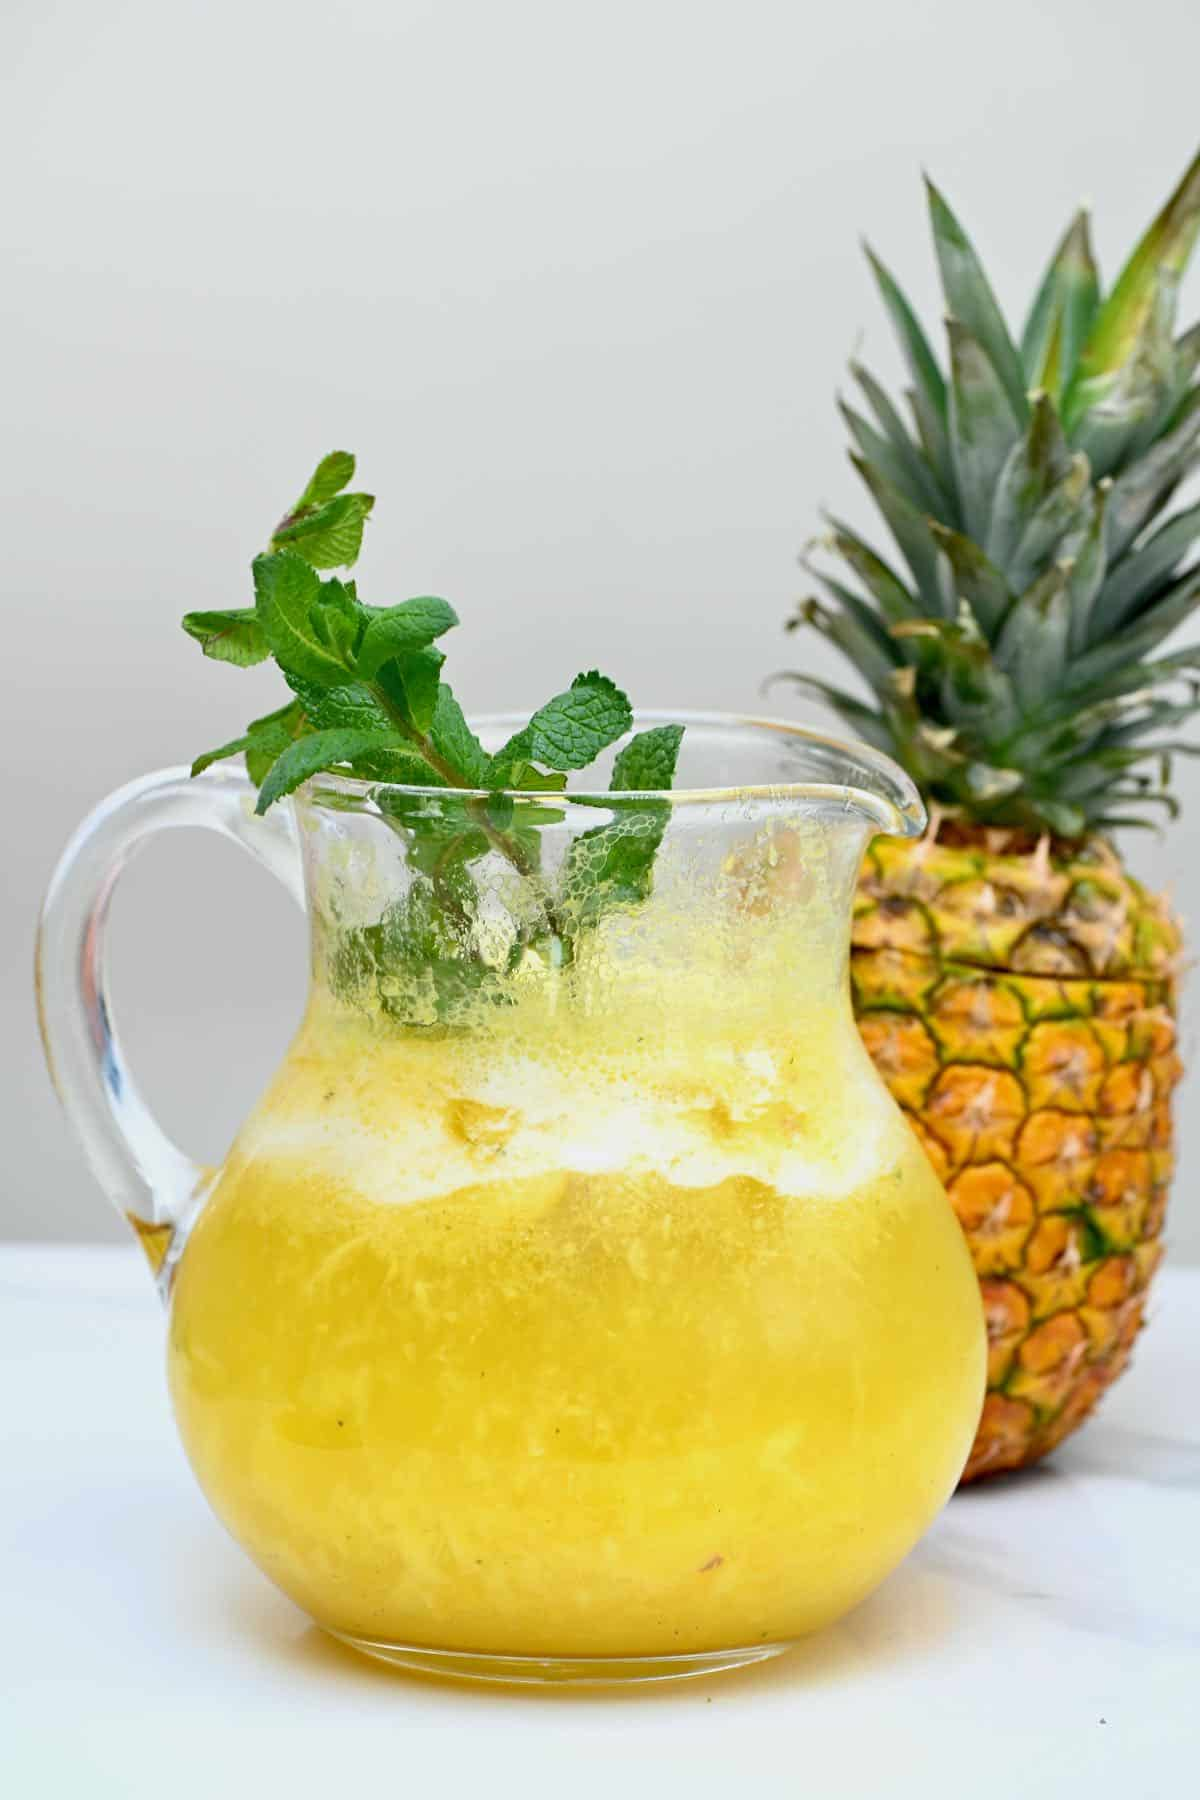 Pineapple lemonade served in a pitcher with mint leaves